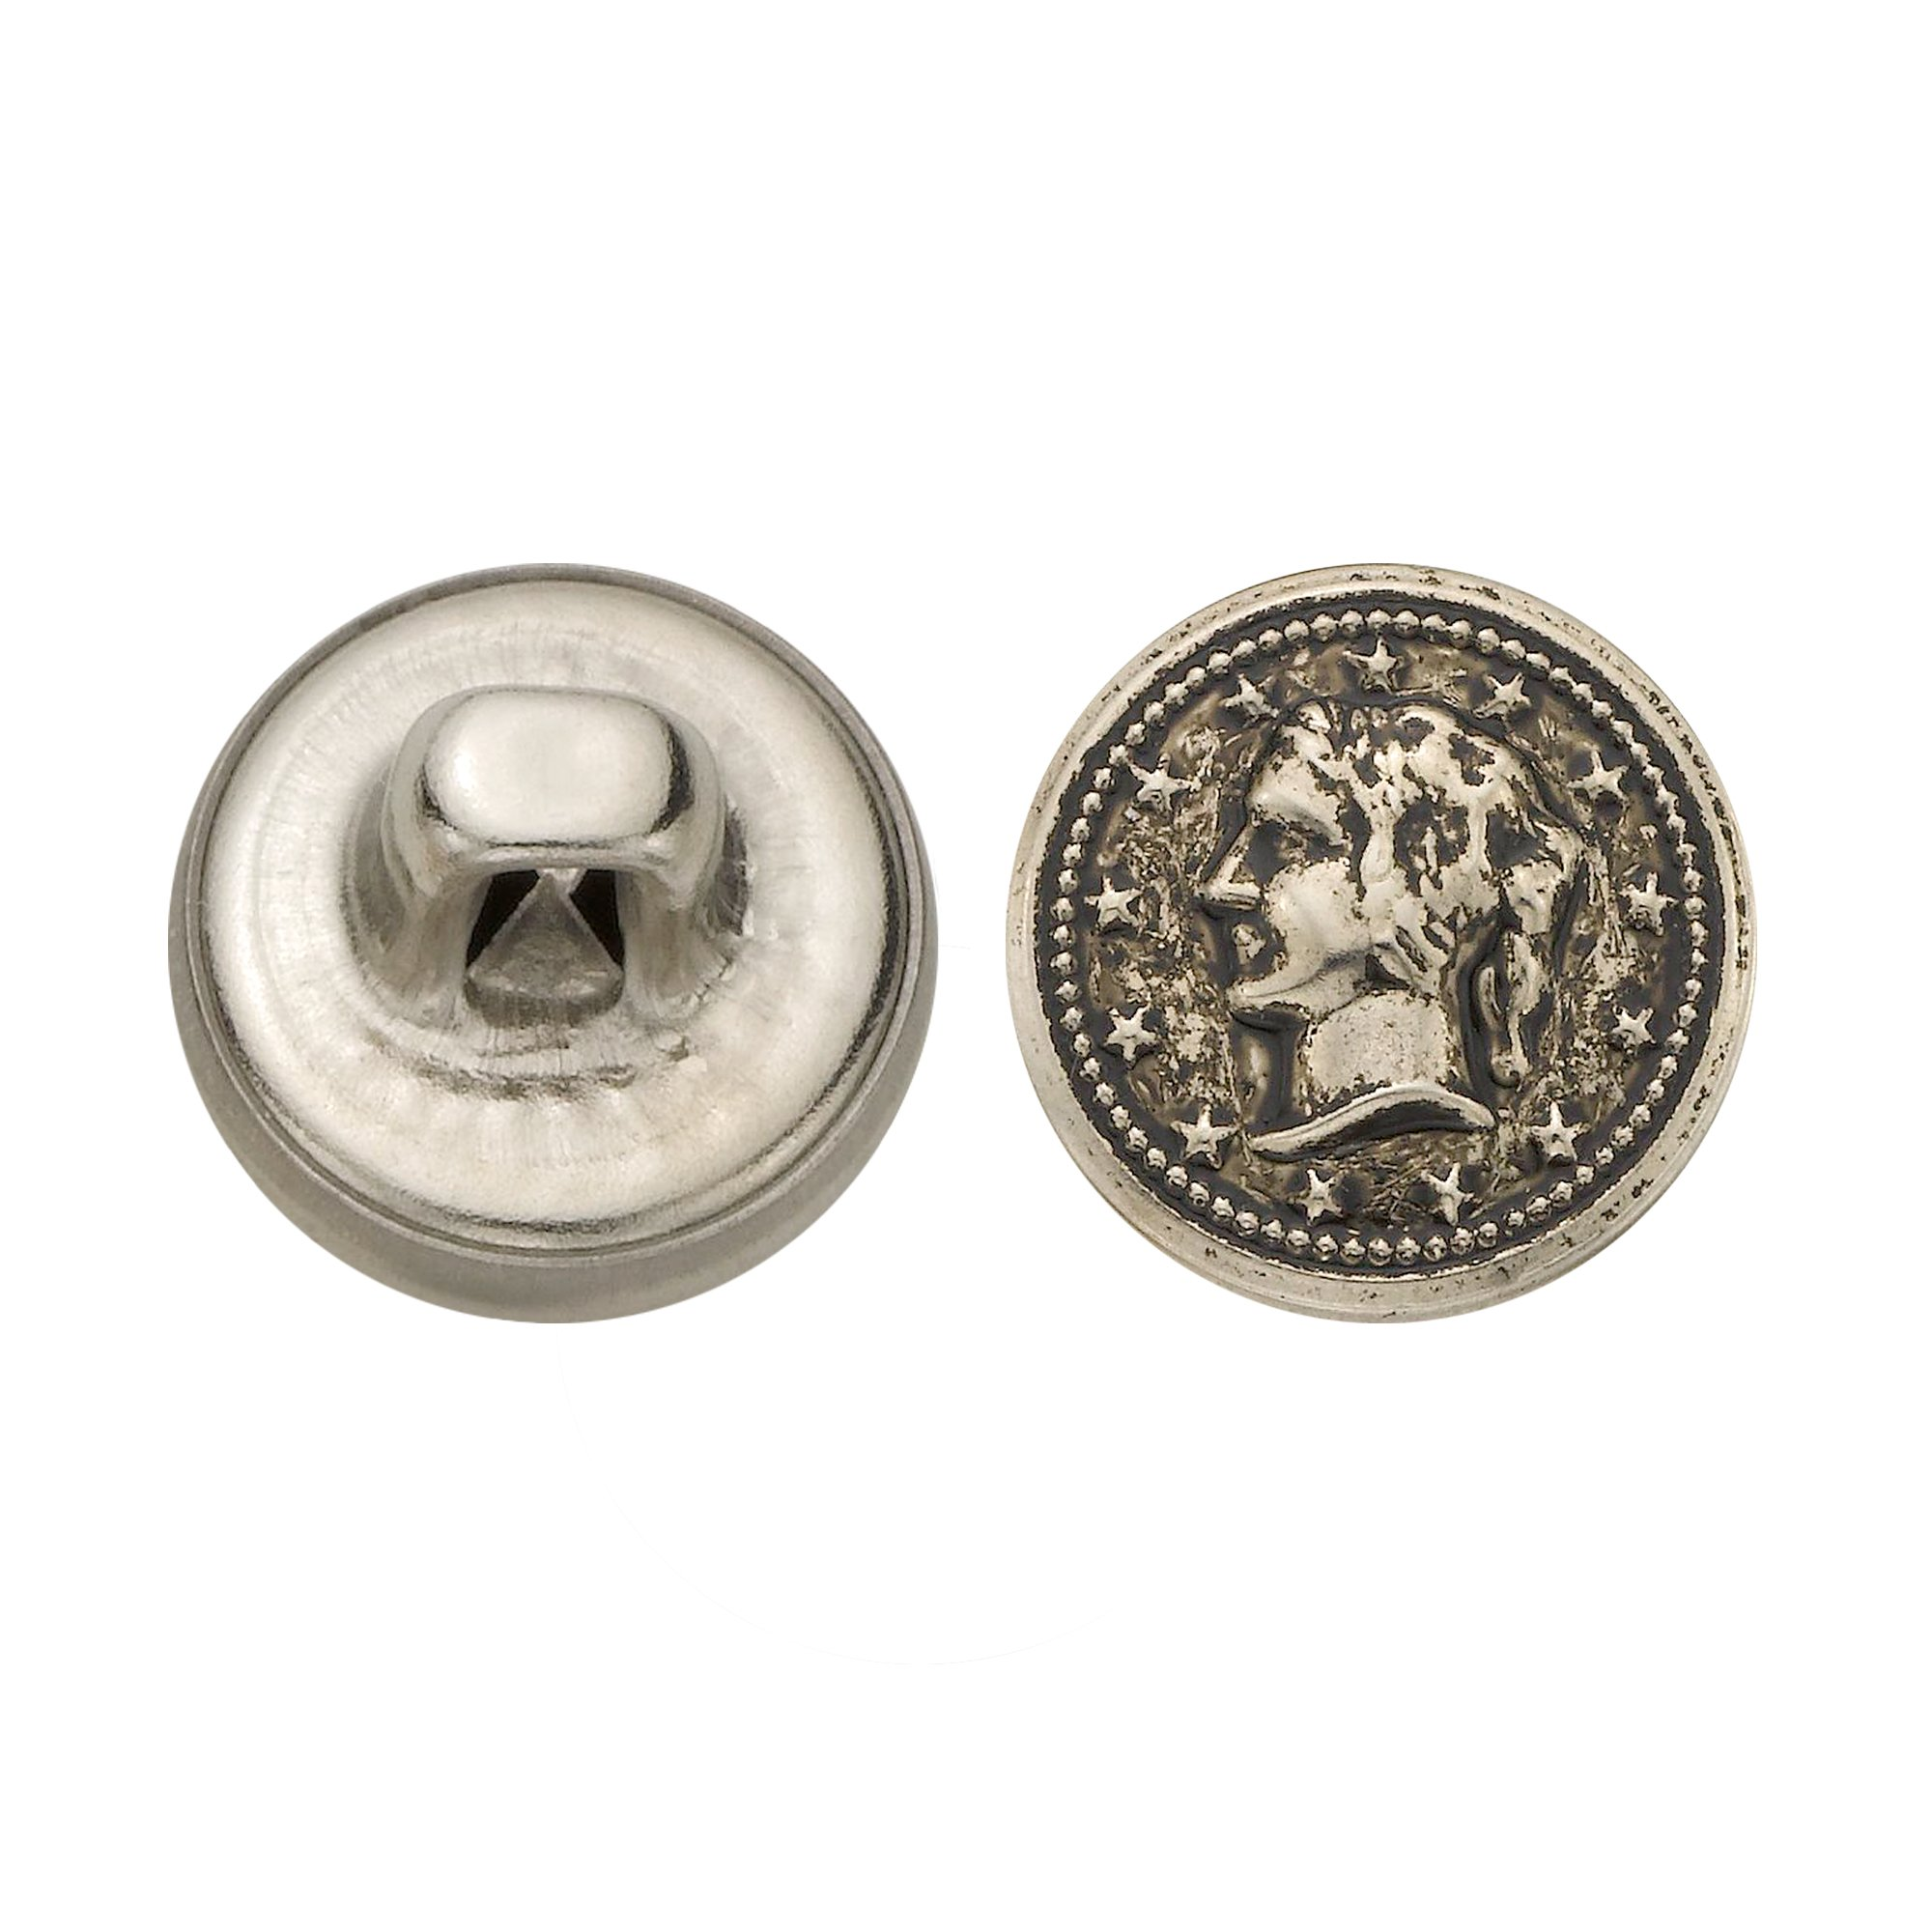 C&C Metal Products 5328 Lady Head Coin Metal Button, Size 20 Ligne, Antique Nickel, 144-Pack